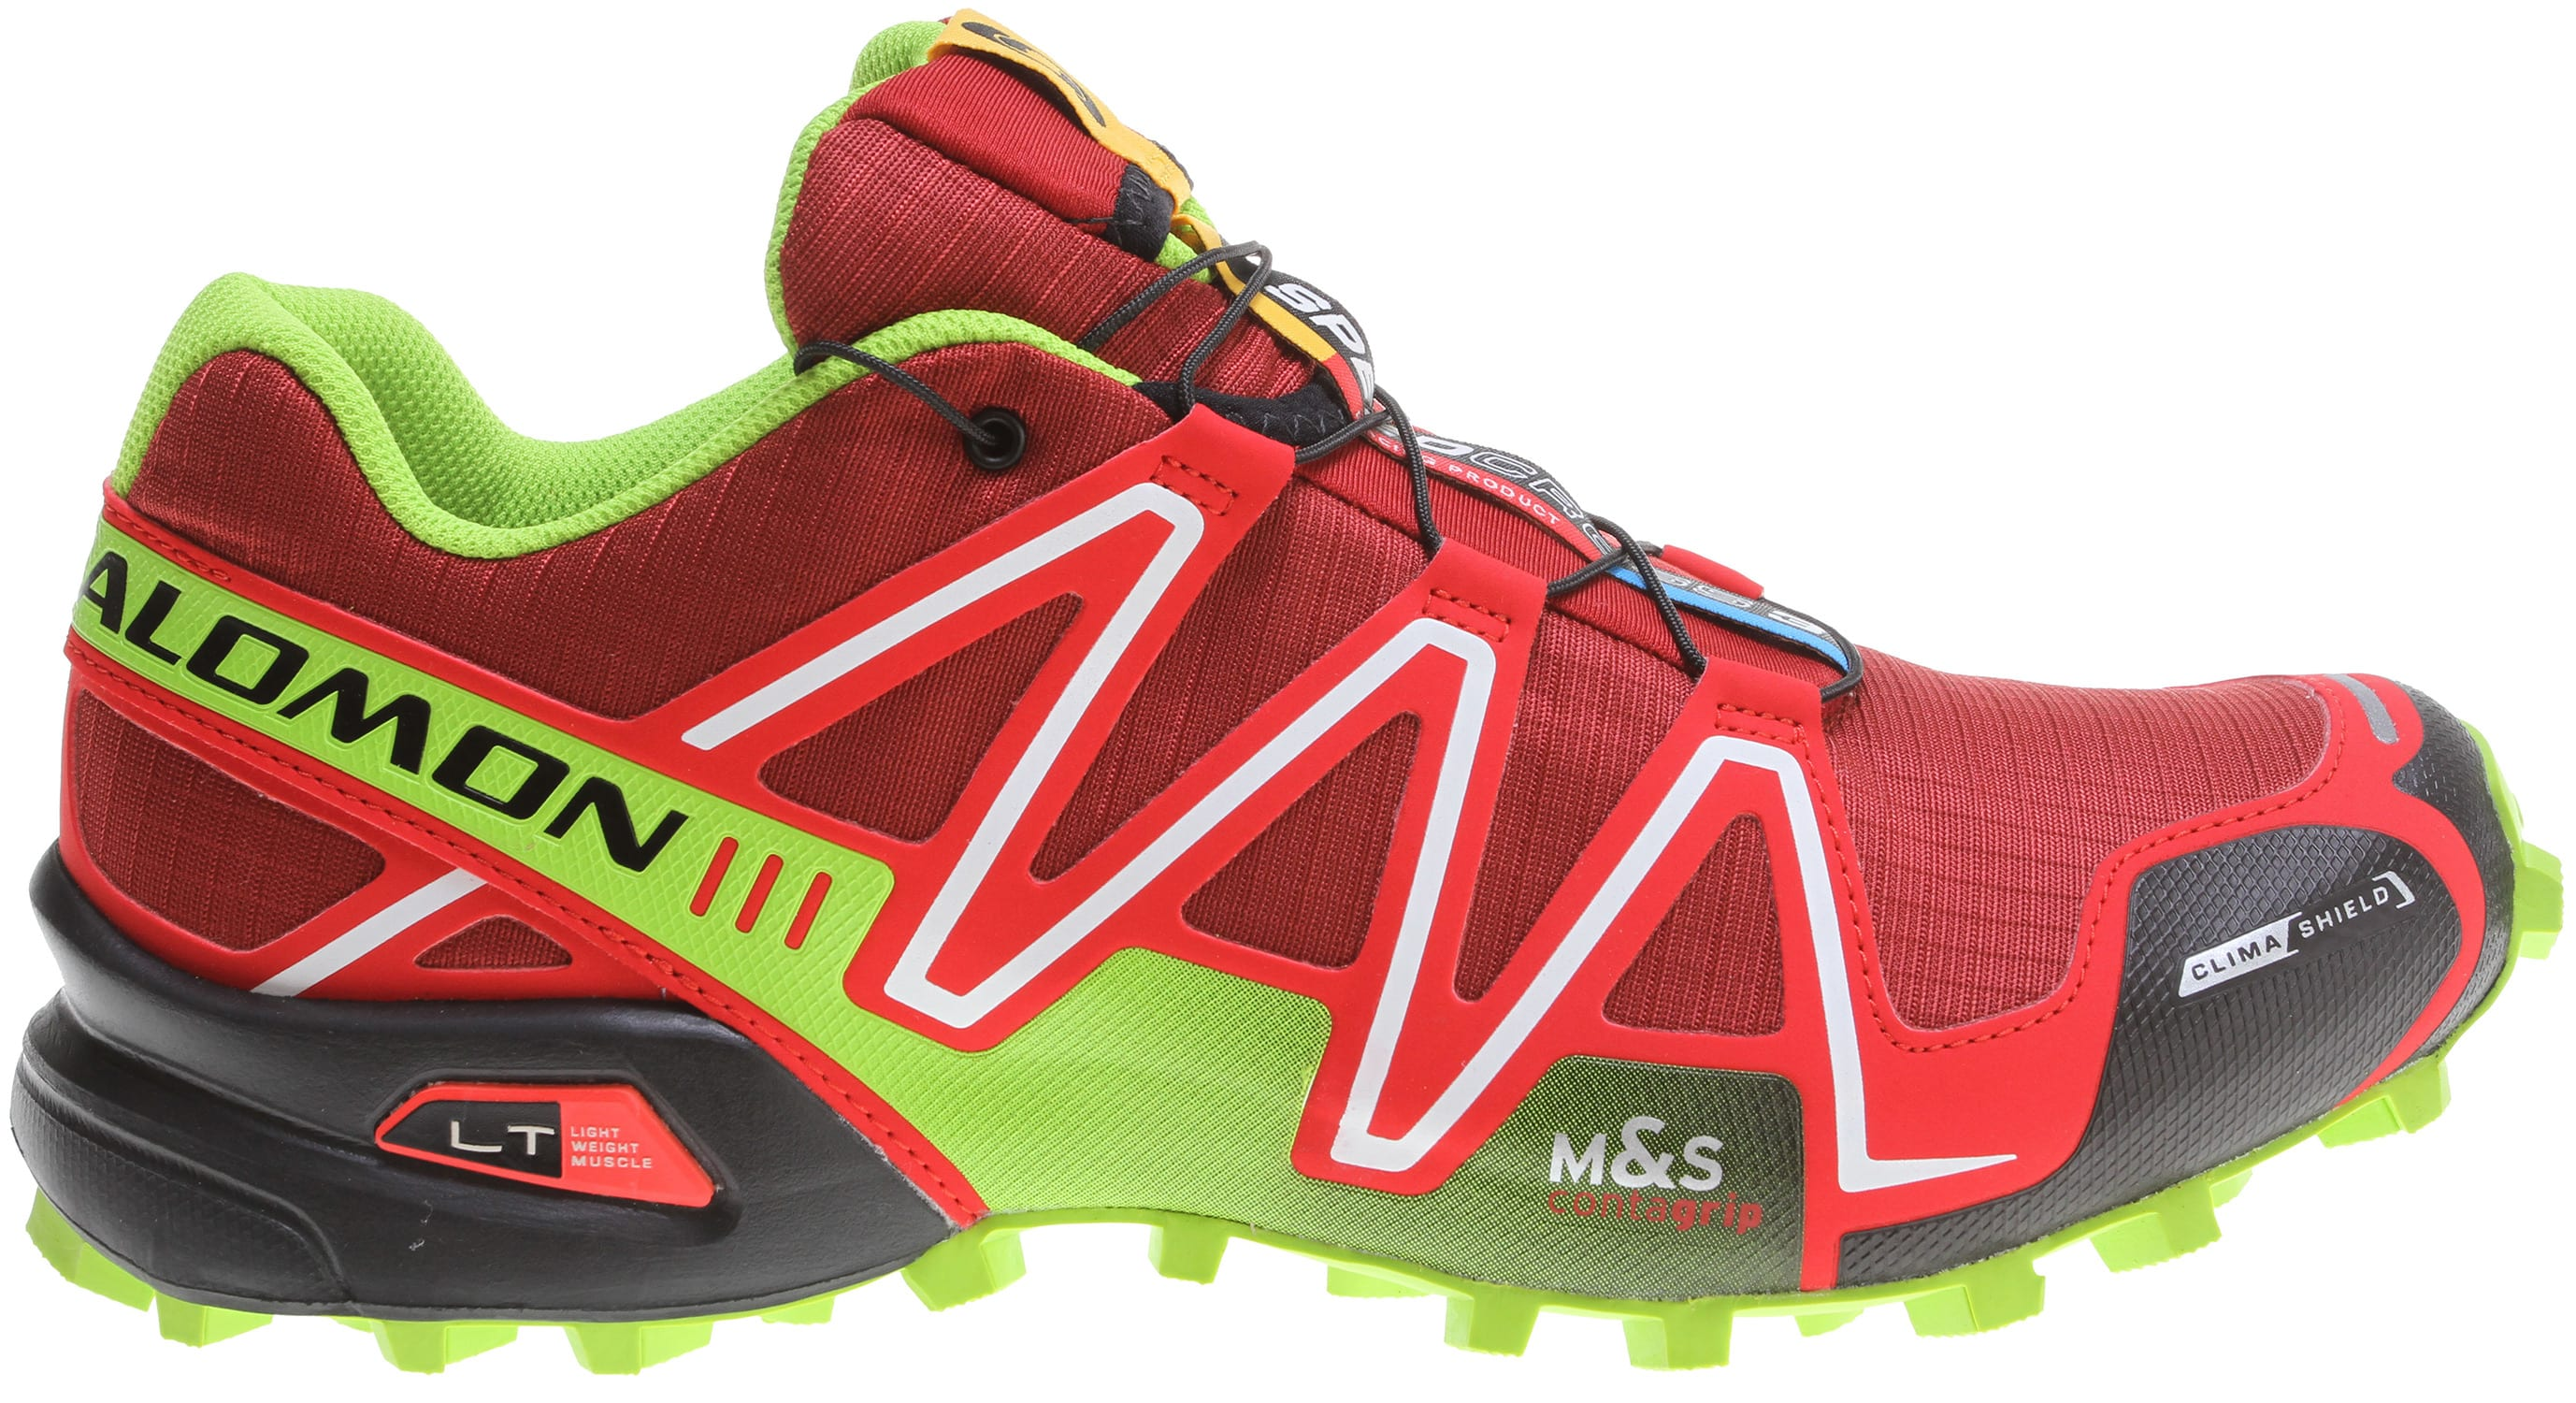 On Sale Salomon Speedcross 3 CS Shoes up to 50% off